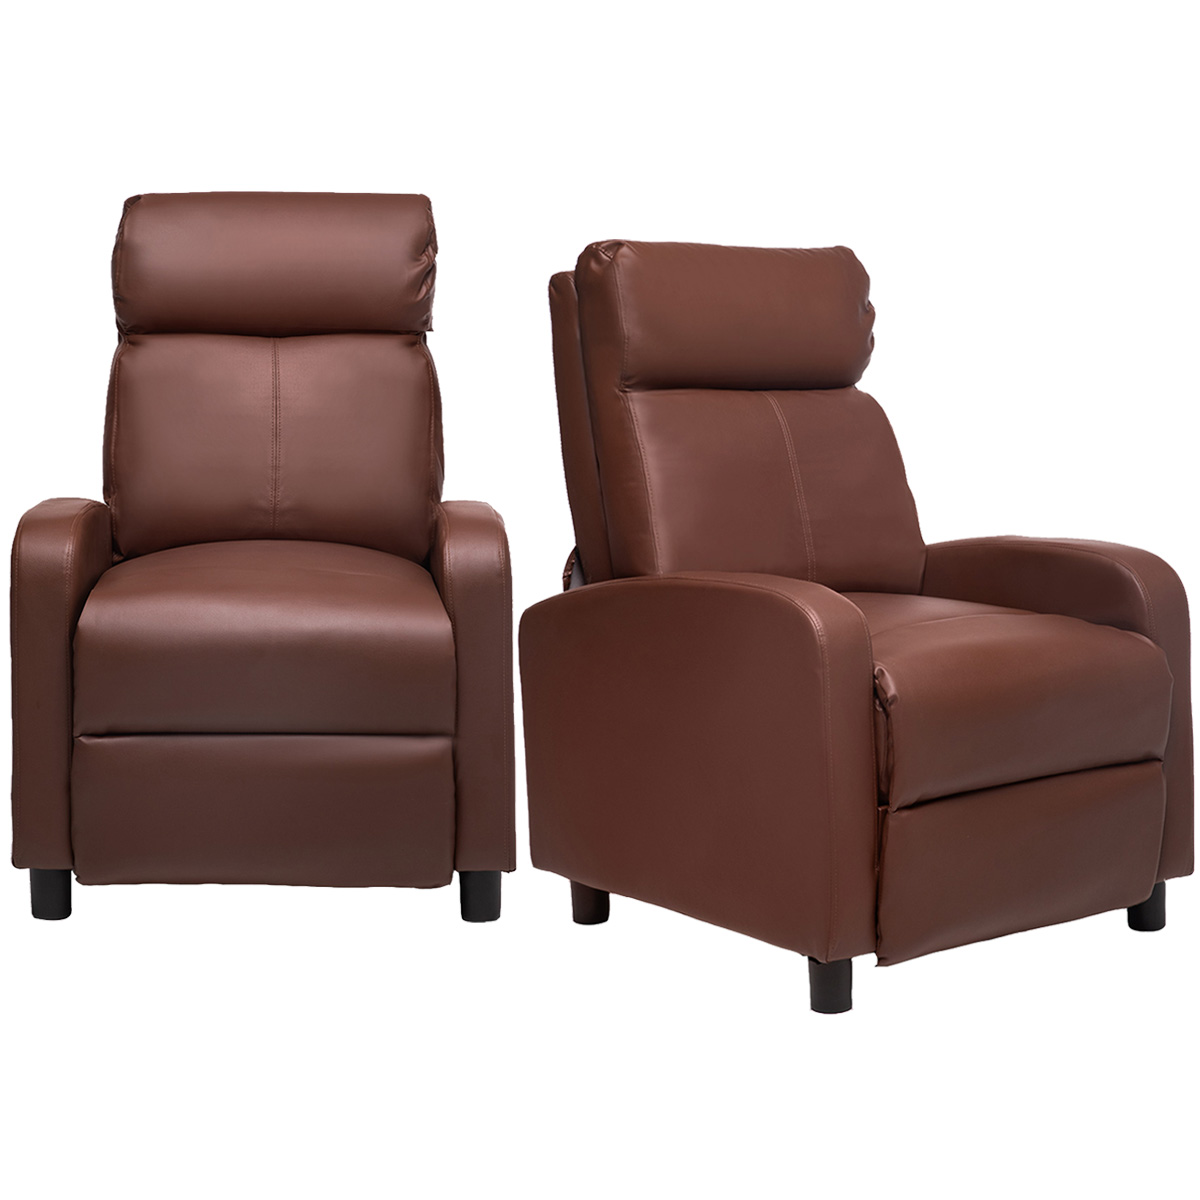 Picture of: 2x Recliner Chair Leather Wingback Chair Sofa For Home Living Room Bedroom Walmart Com Walmart Com